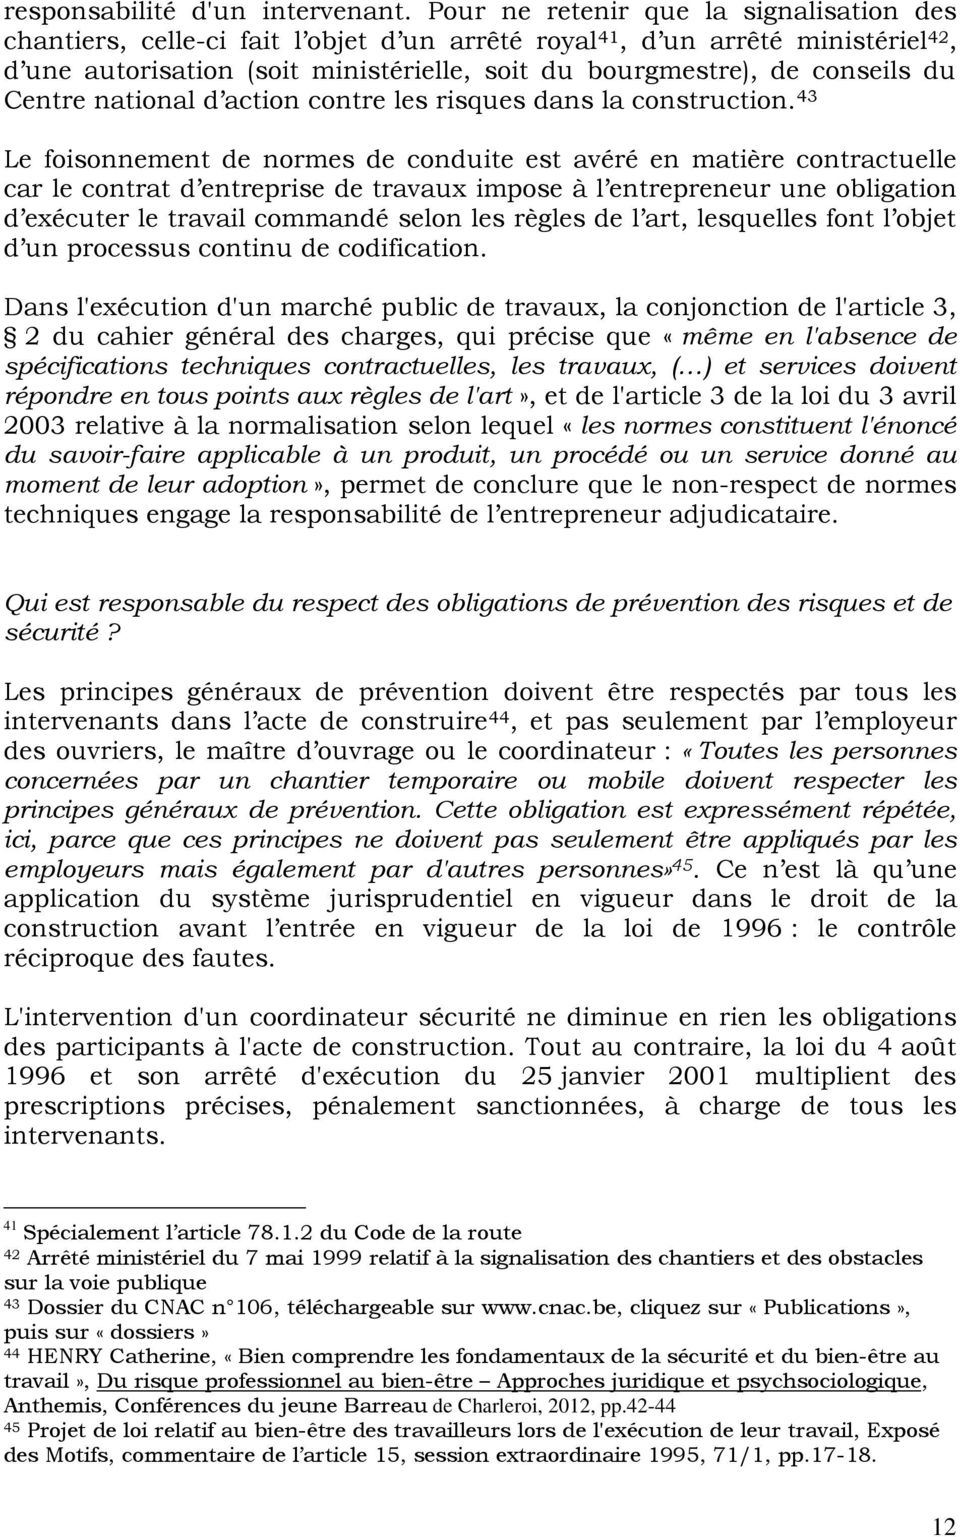 du Centre national d action contre les risques dans la construction.